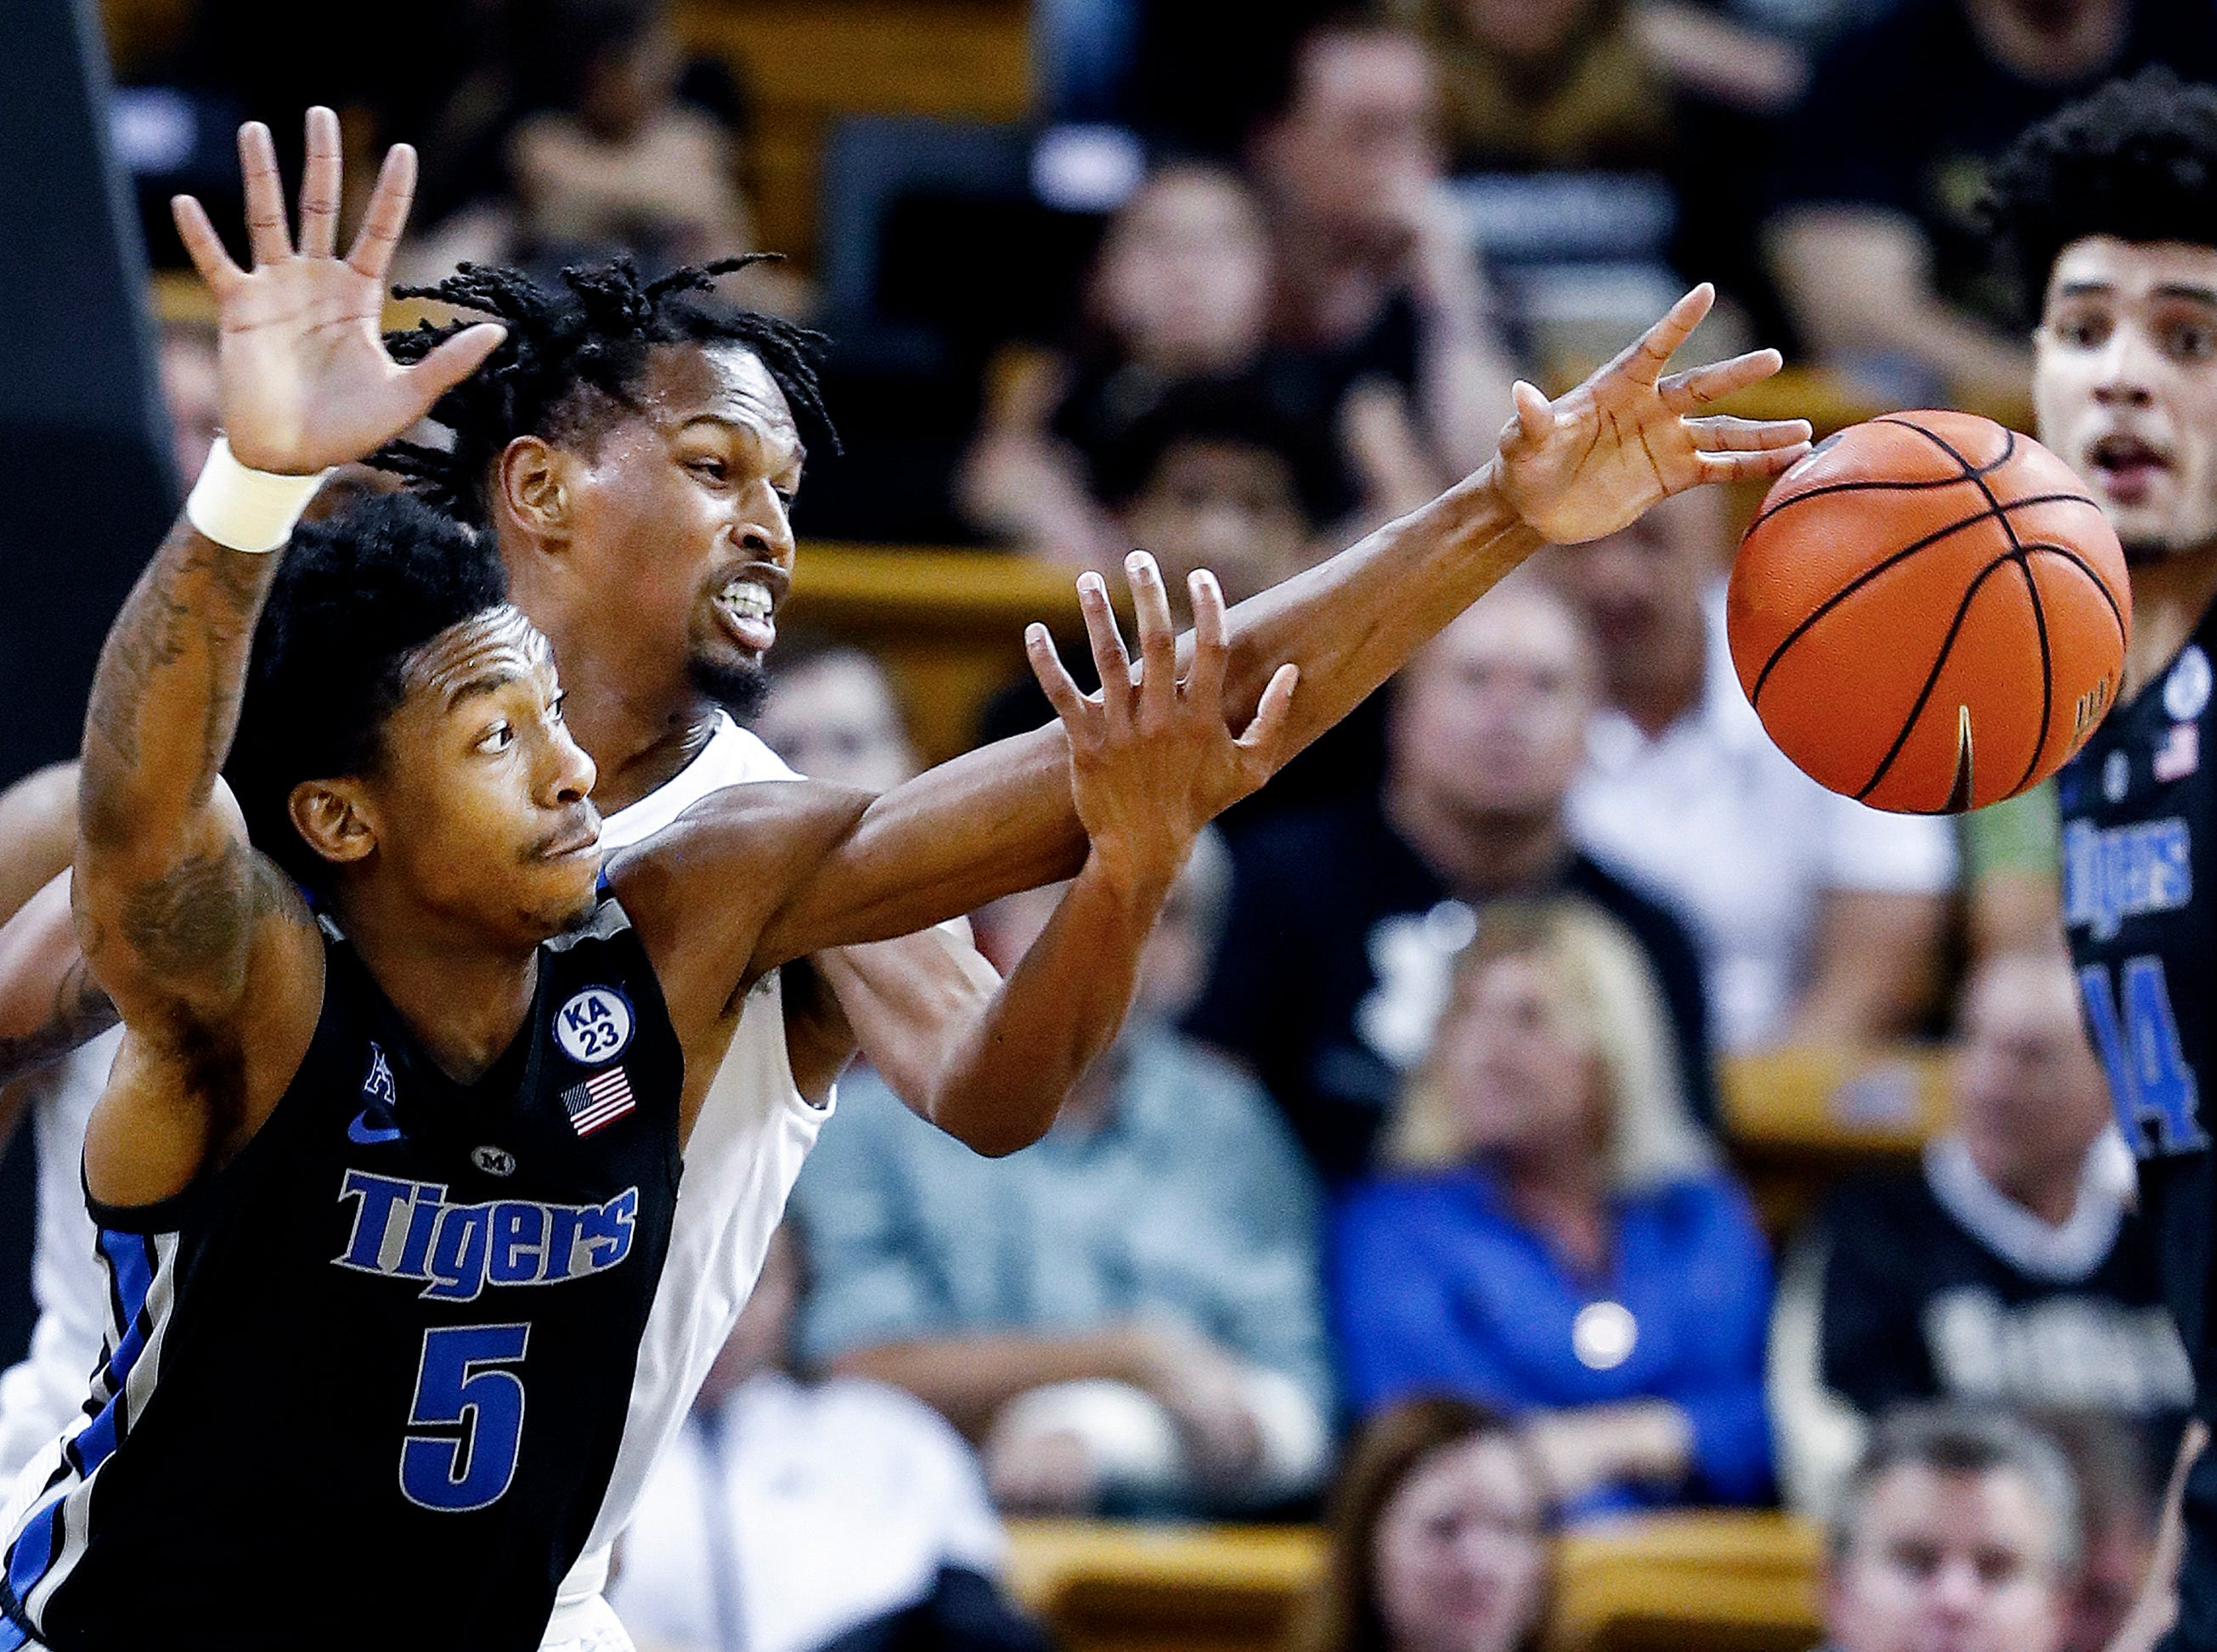 Memphis defender Kareem Brewton Jr. (front) grabs a loose ball away from UCF guard Terrell Allen (back) during action in Orlando Saturday, February 16, 2019.